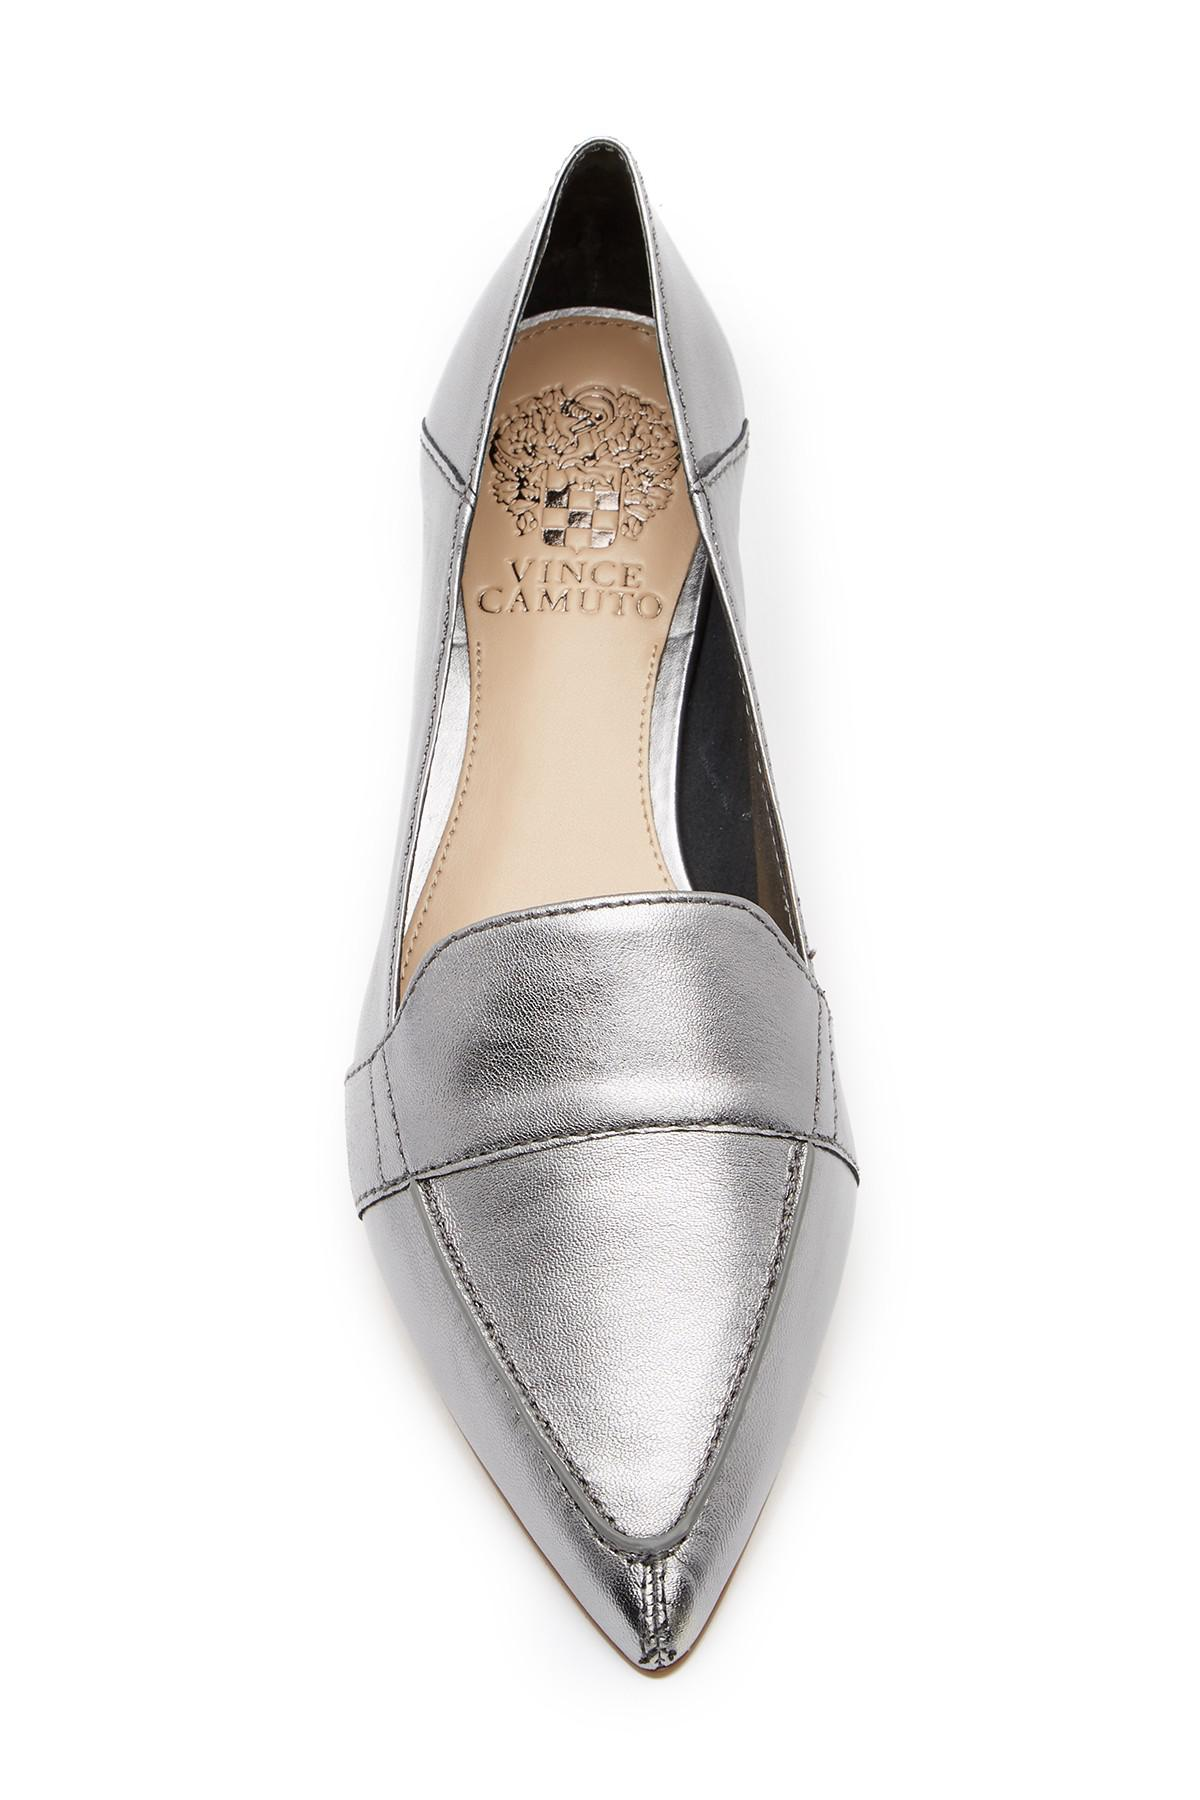 218b95c6fa6 Vince Camuto - Multicolor Maita Pointed Toe Leather Loafer - Lyst. View  fullscreen